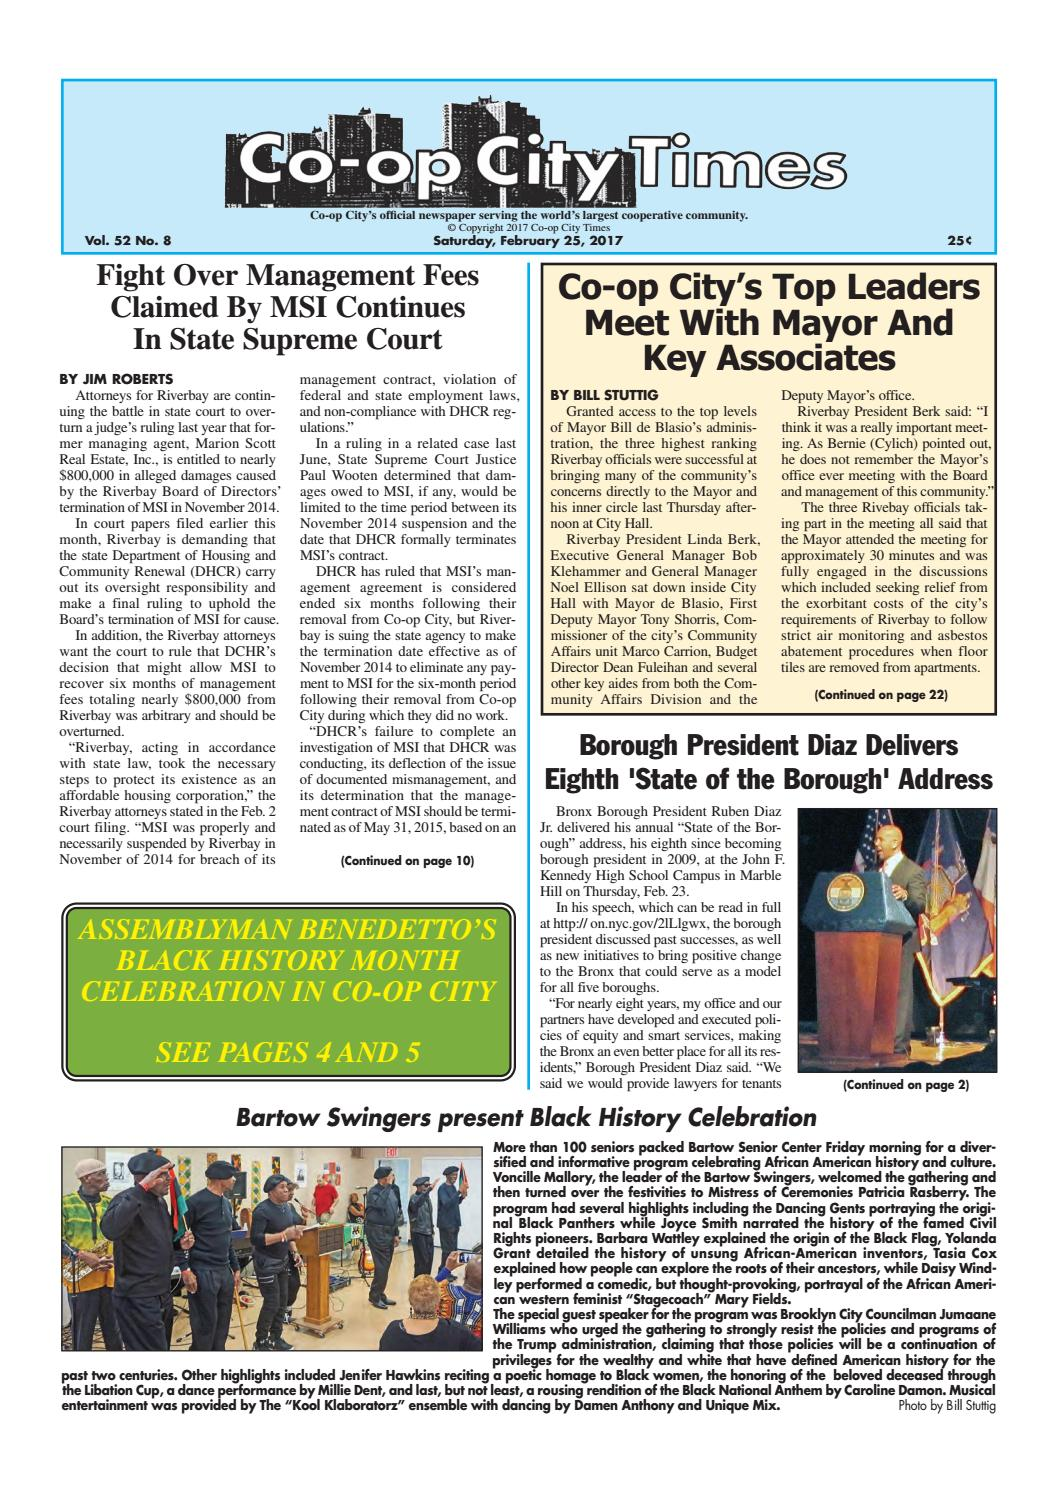 Co-op City Times 02/25/17 by Co-op City Times - issuu